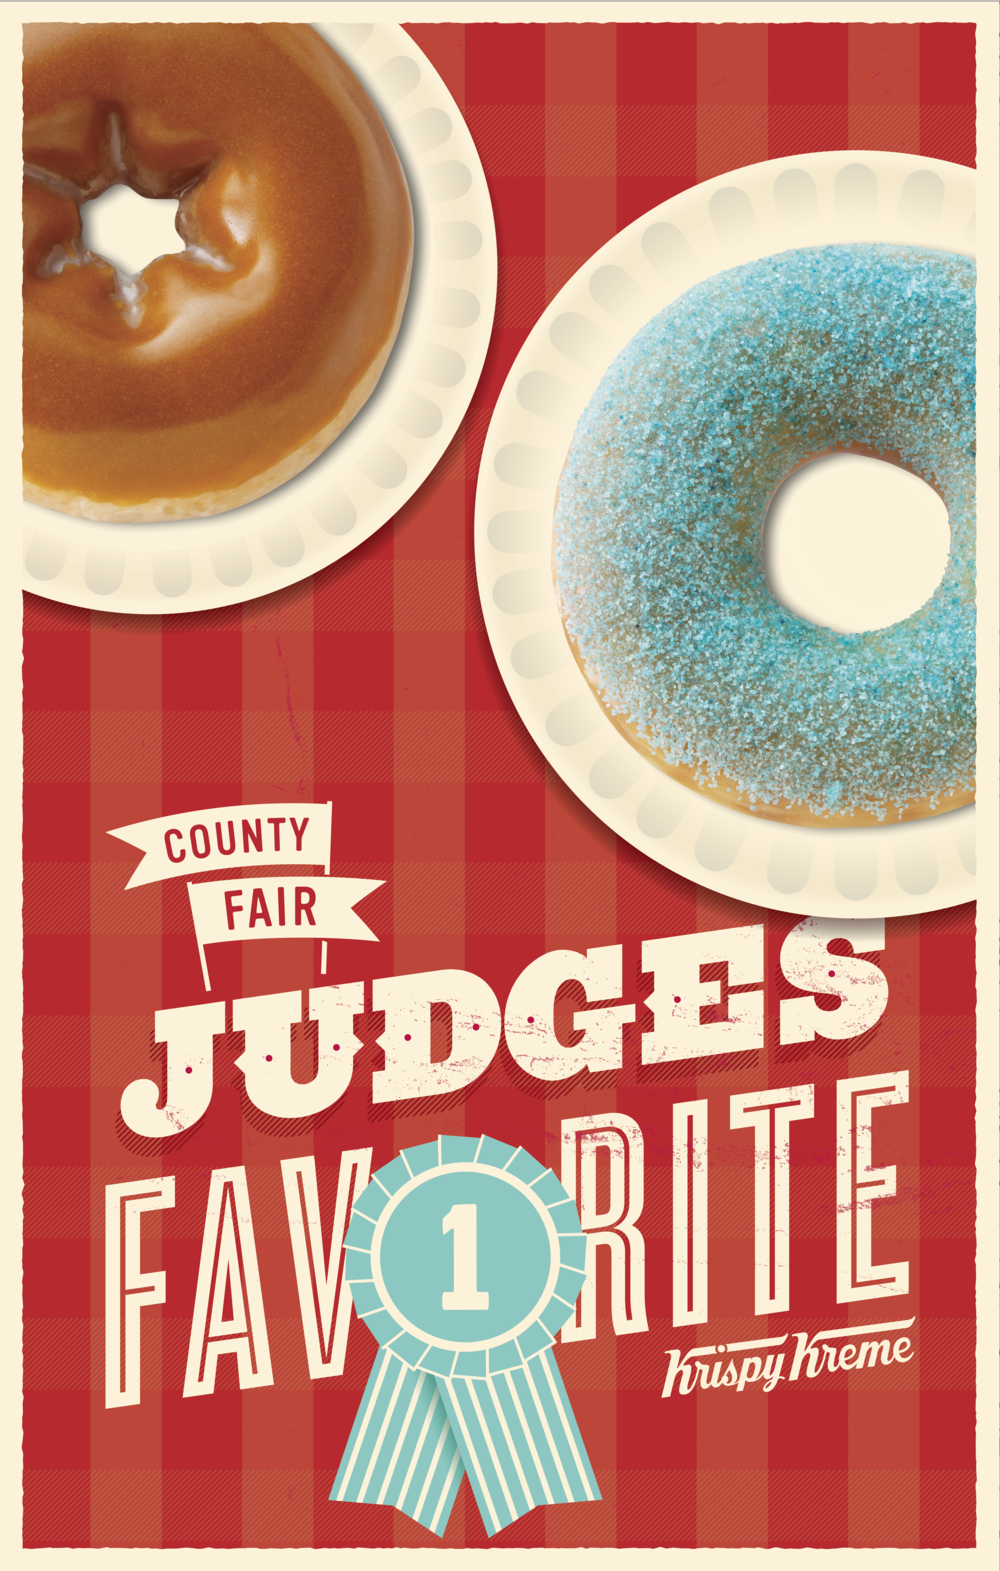 CountyFair_JudgesFav.png